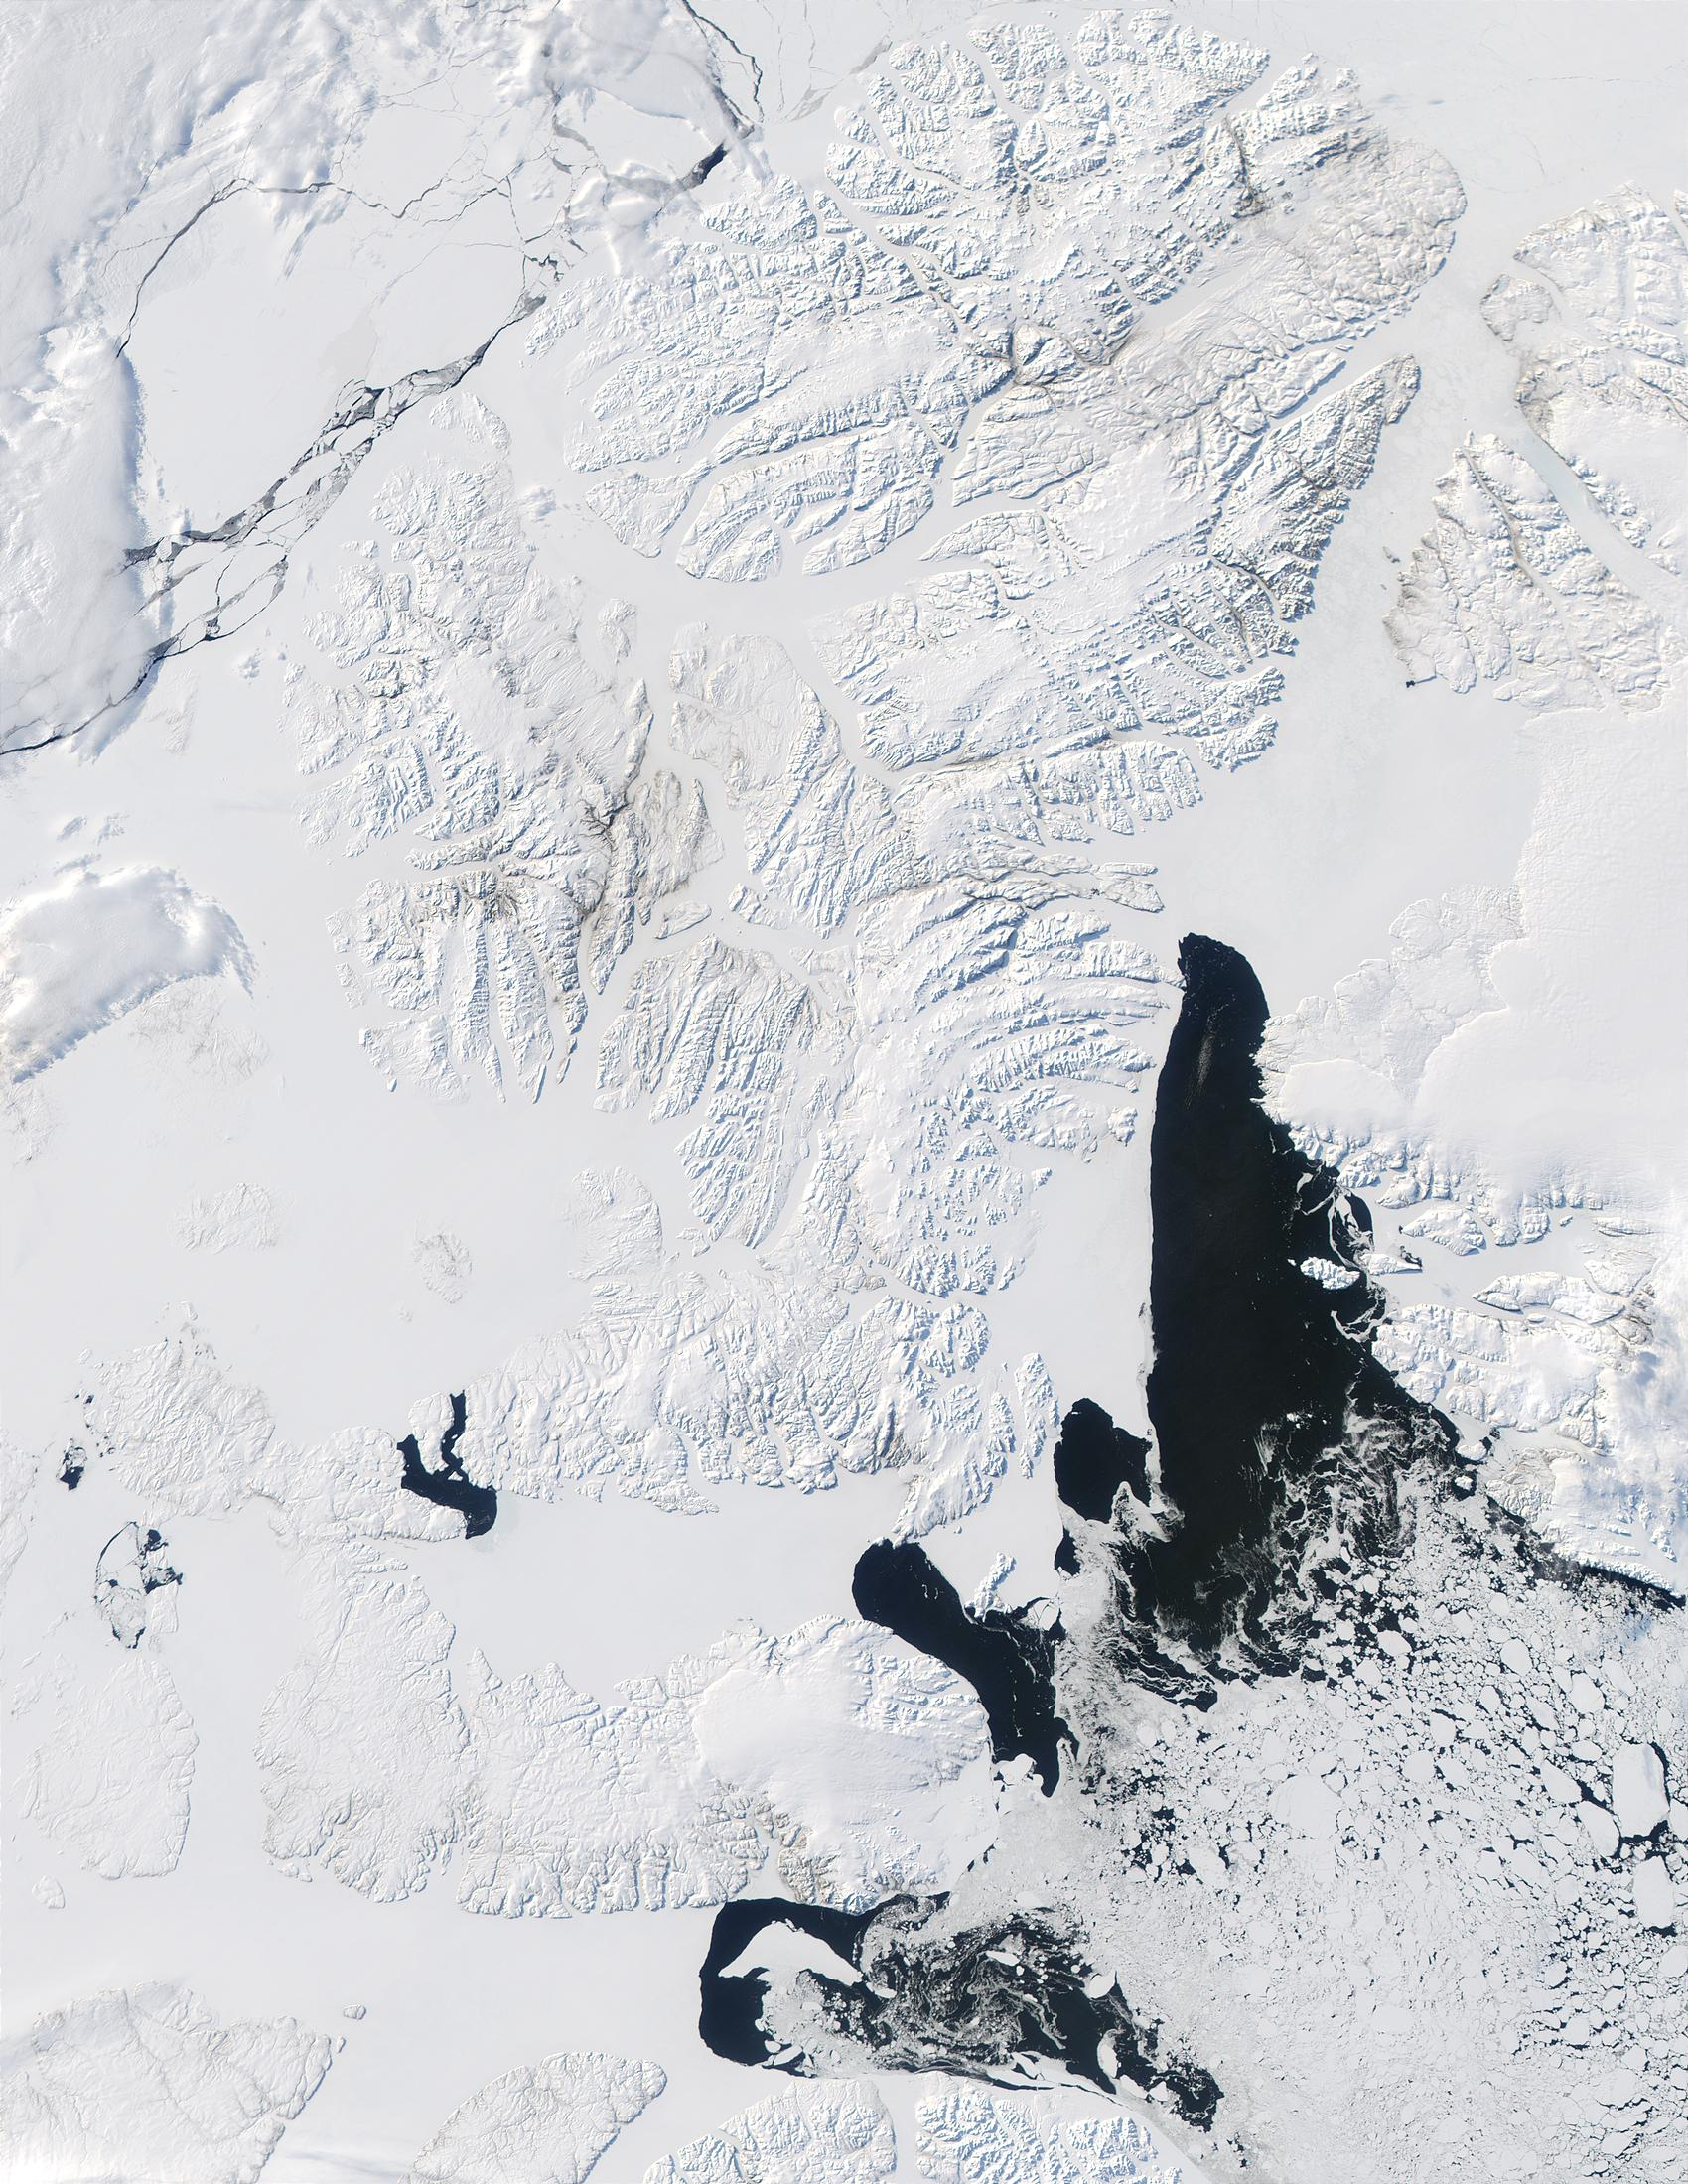 Queen Elizabeth Islands and Baffin Bay, Northern Canada - related image preview